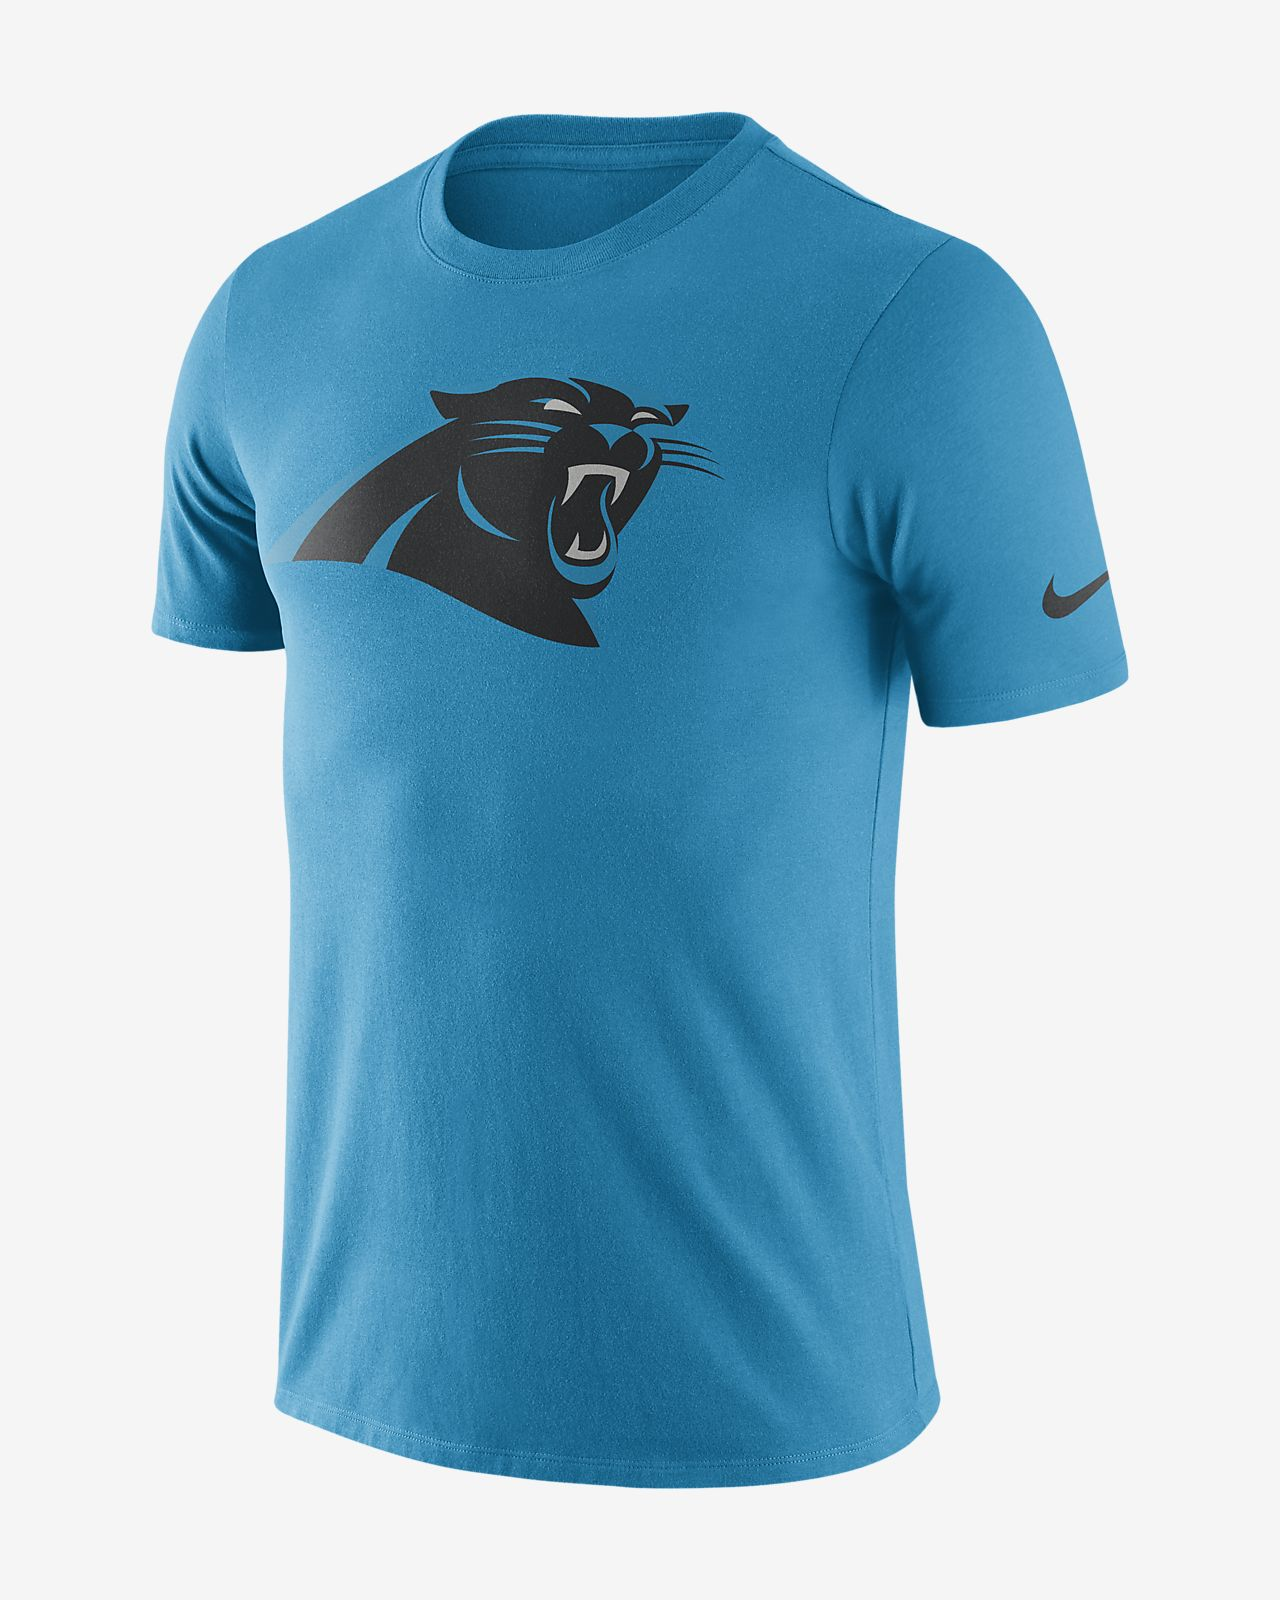 nike essential logo nfl panthers men s t shirt nike com rh nike com Basketball Clip Art Panther Head Panther Holding a Basketball